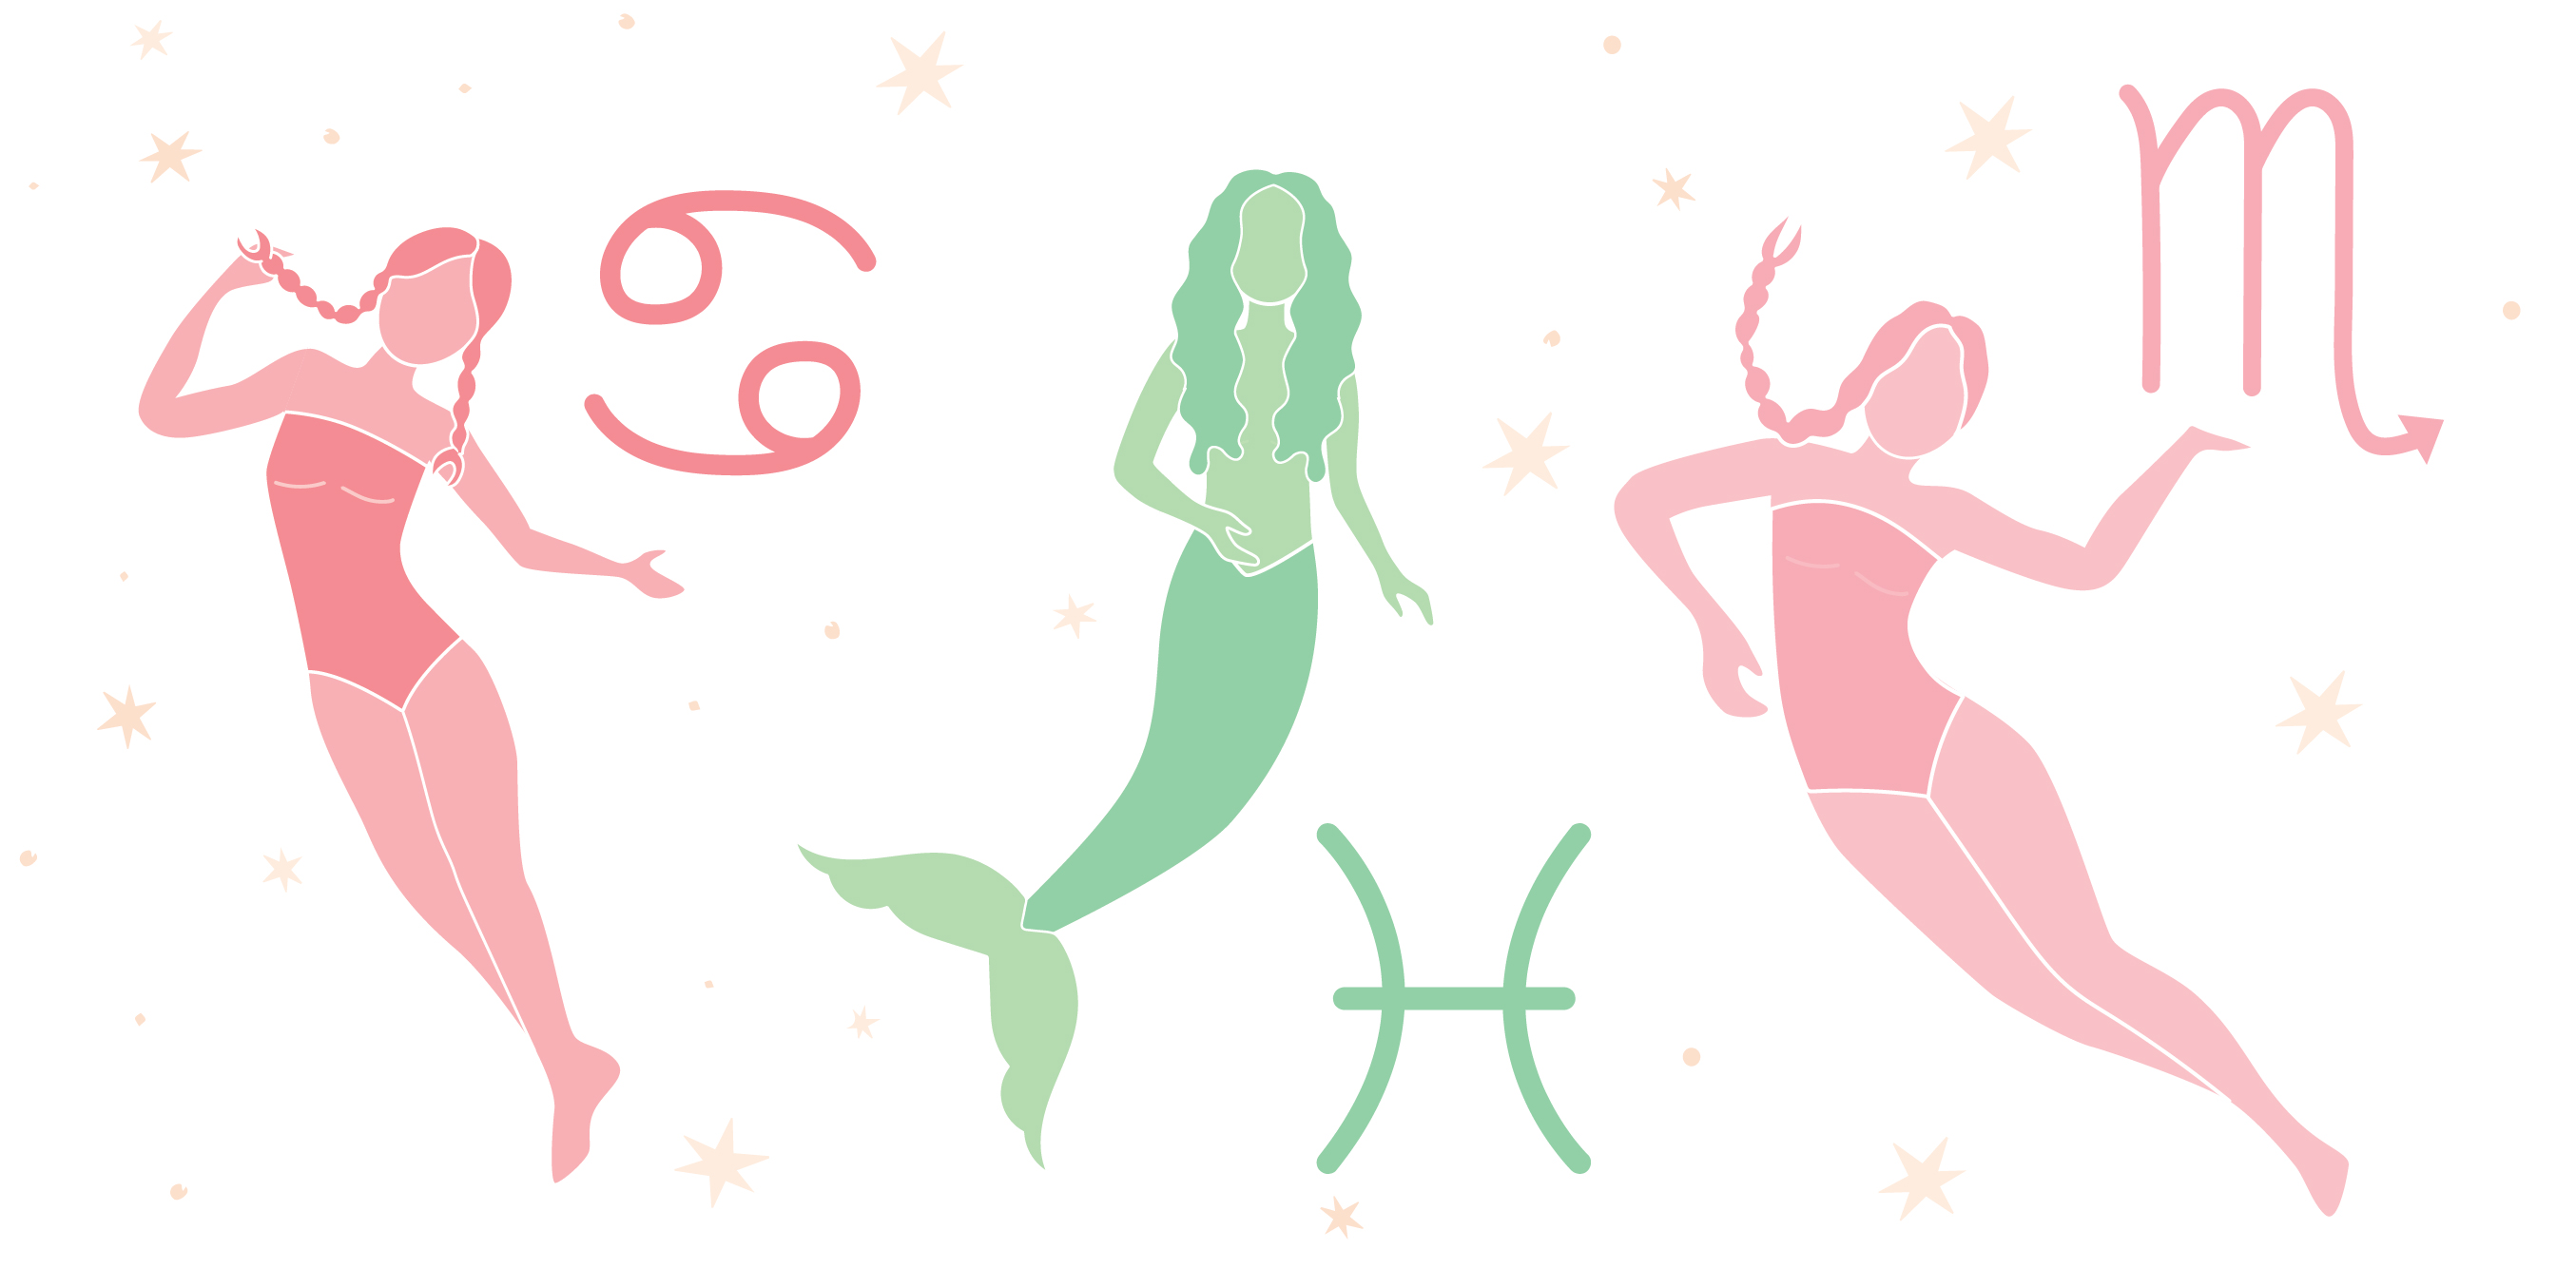 Essential oils for your star sign: Water